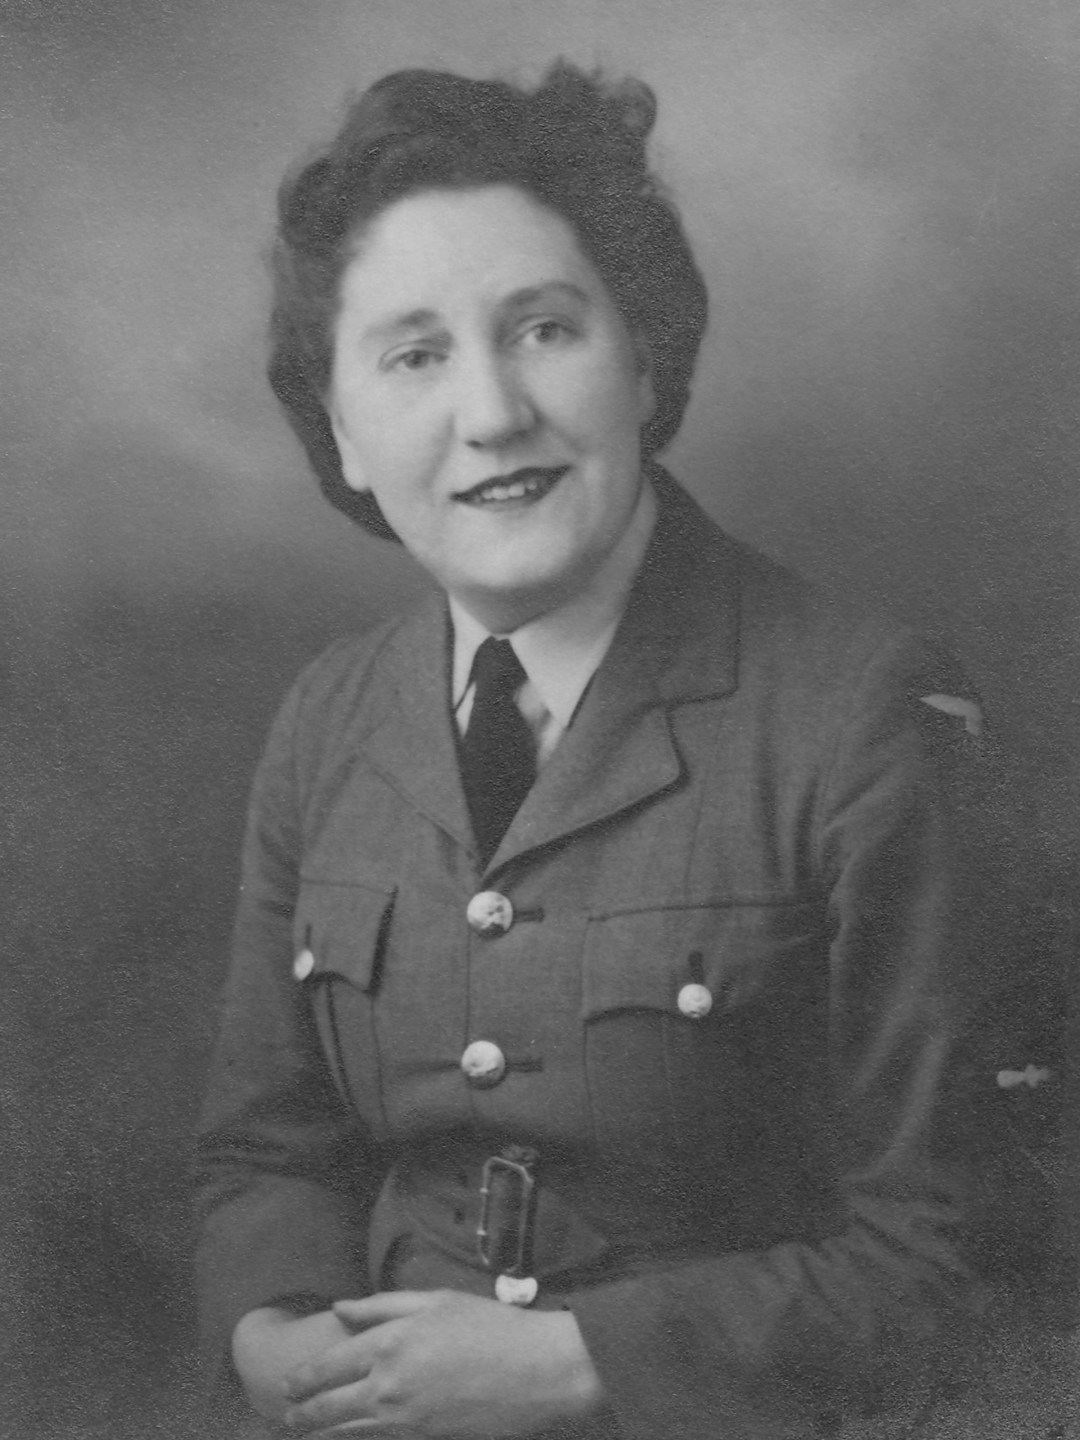 Portrait photograph of Mary Walker in her Women's Auxiliary Air Force uniform.